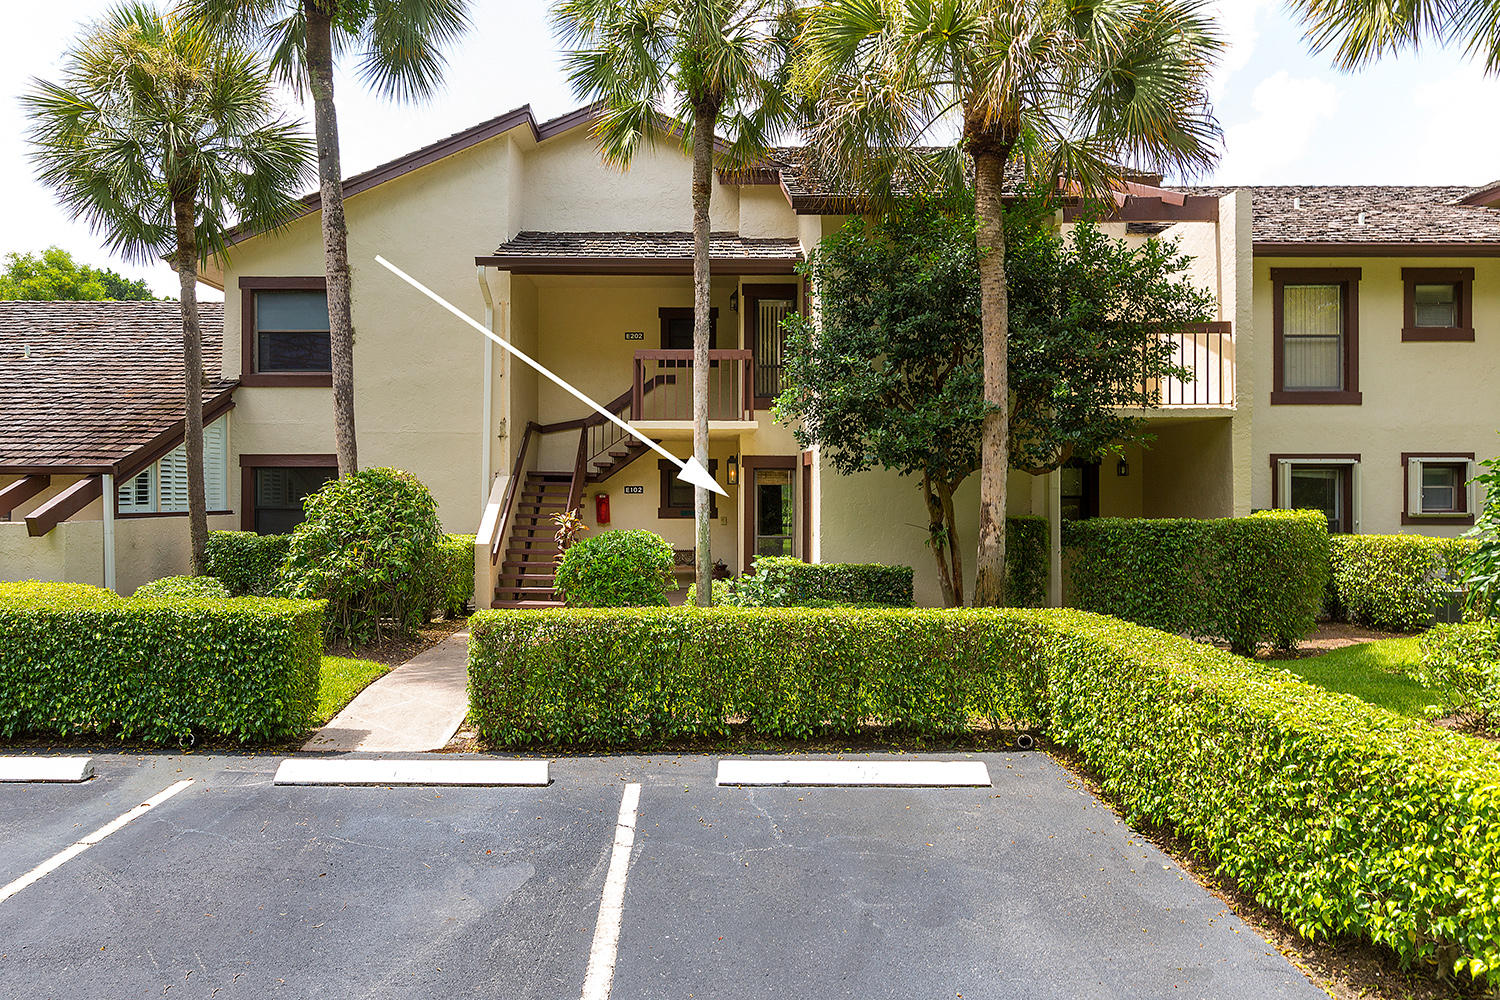 11397 Pond View Drive, Wellington, Florida 33414, 2 Bedrooms Bedrooms, ,2 BathroomsBathrooms,Condo/Coop,For Rent,PALM BEACH POLO,Pond View,1,RX-10524689